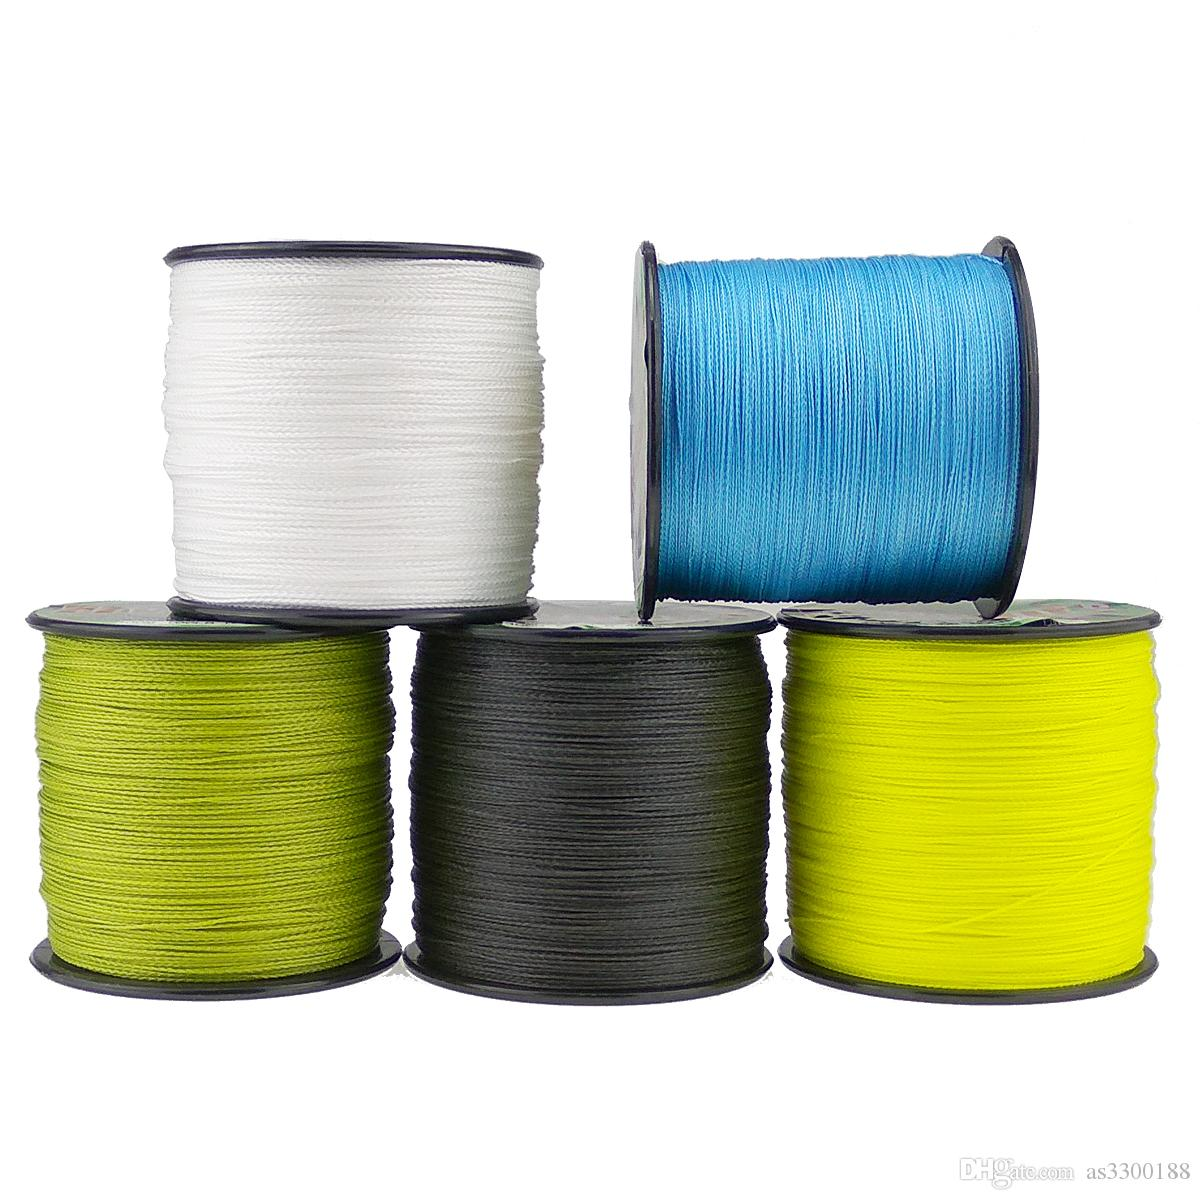 Braided fishing line 500m super pe wire 8 strands 10 20 30 130 150 200 250 300LB green grey yellow multicolor 8 braid cord wire 0.14mm-1.0mm